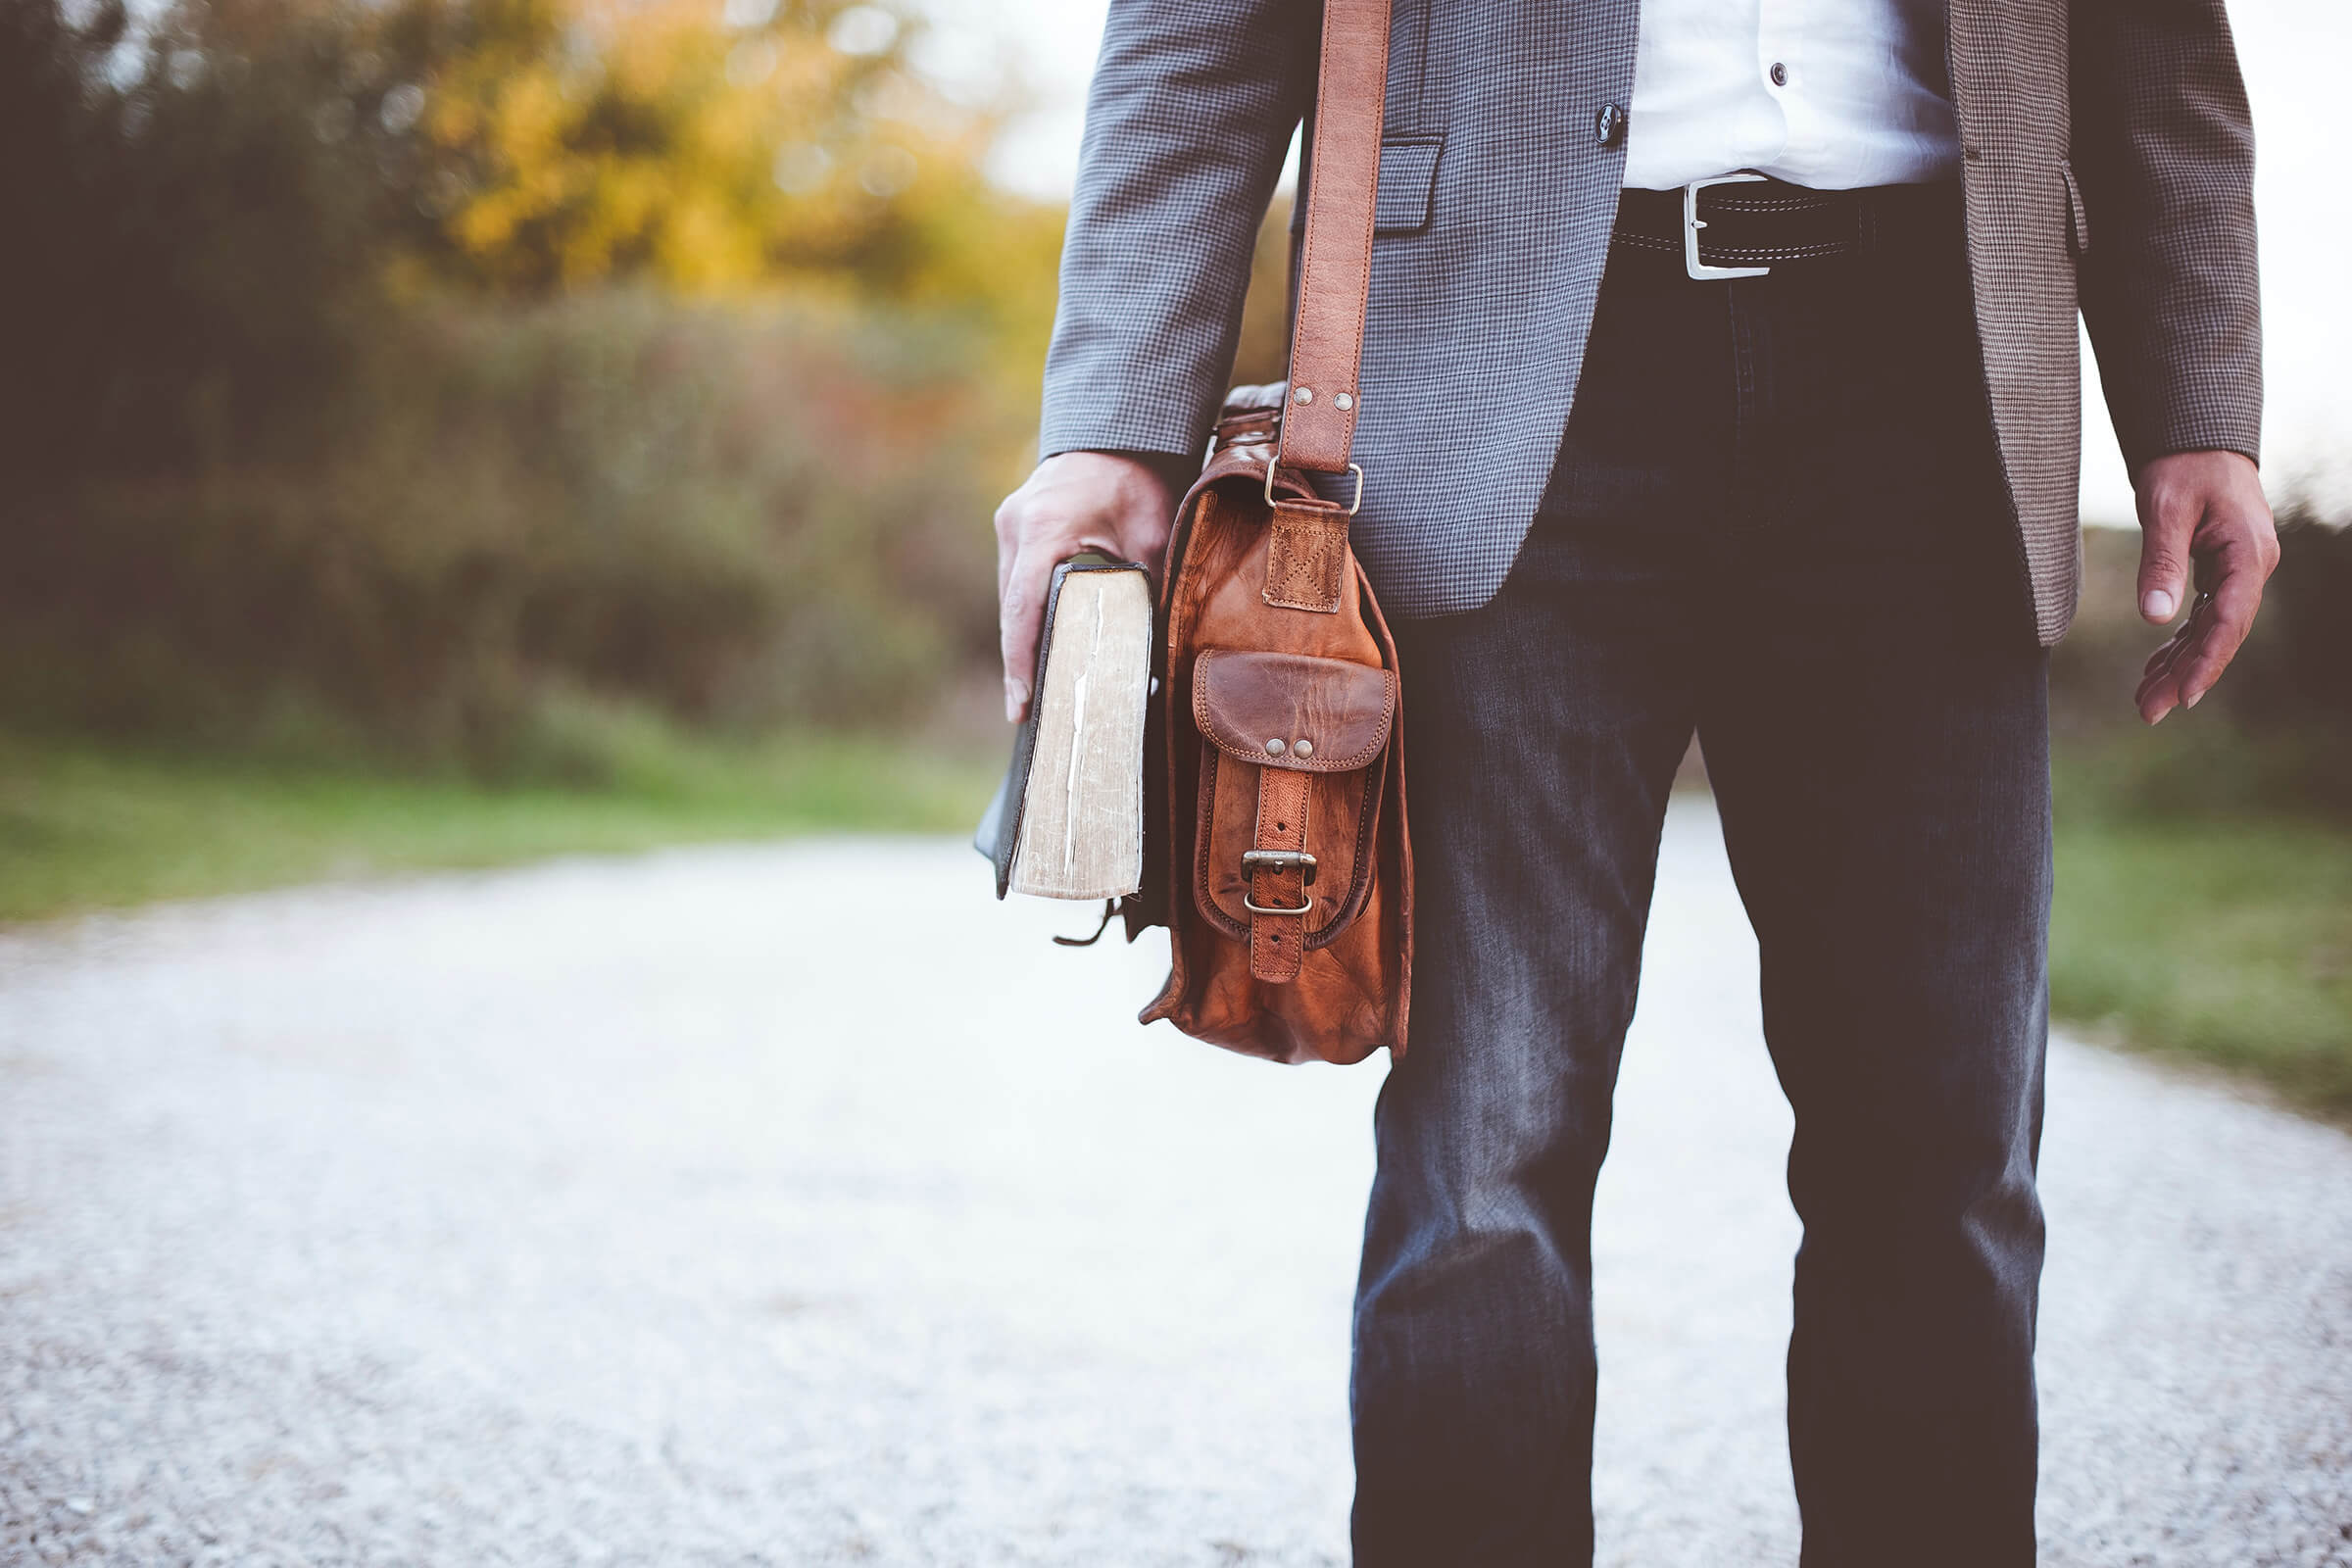 Stock photo of a man in jeans with a book and messenger bag